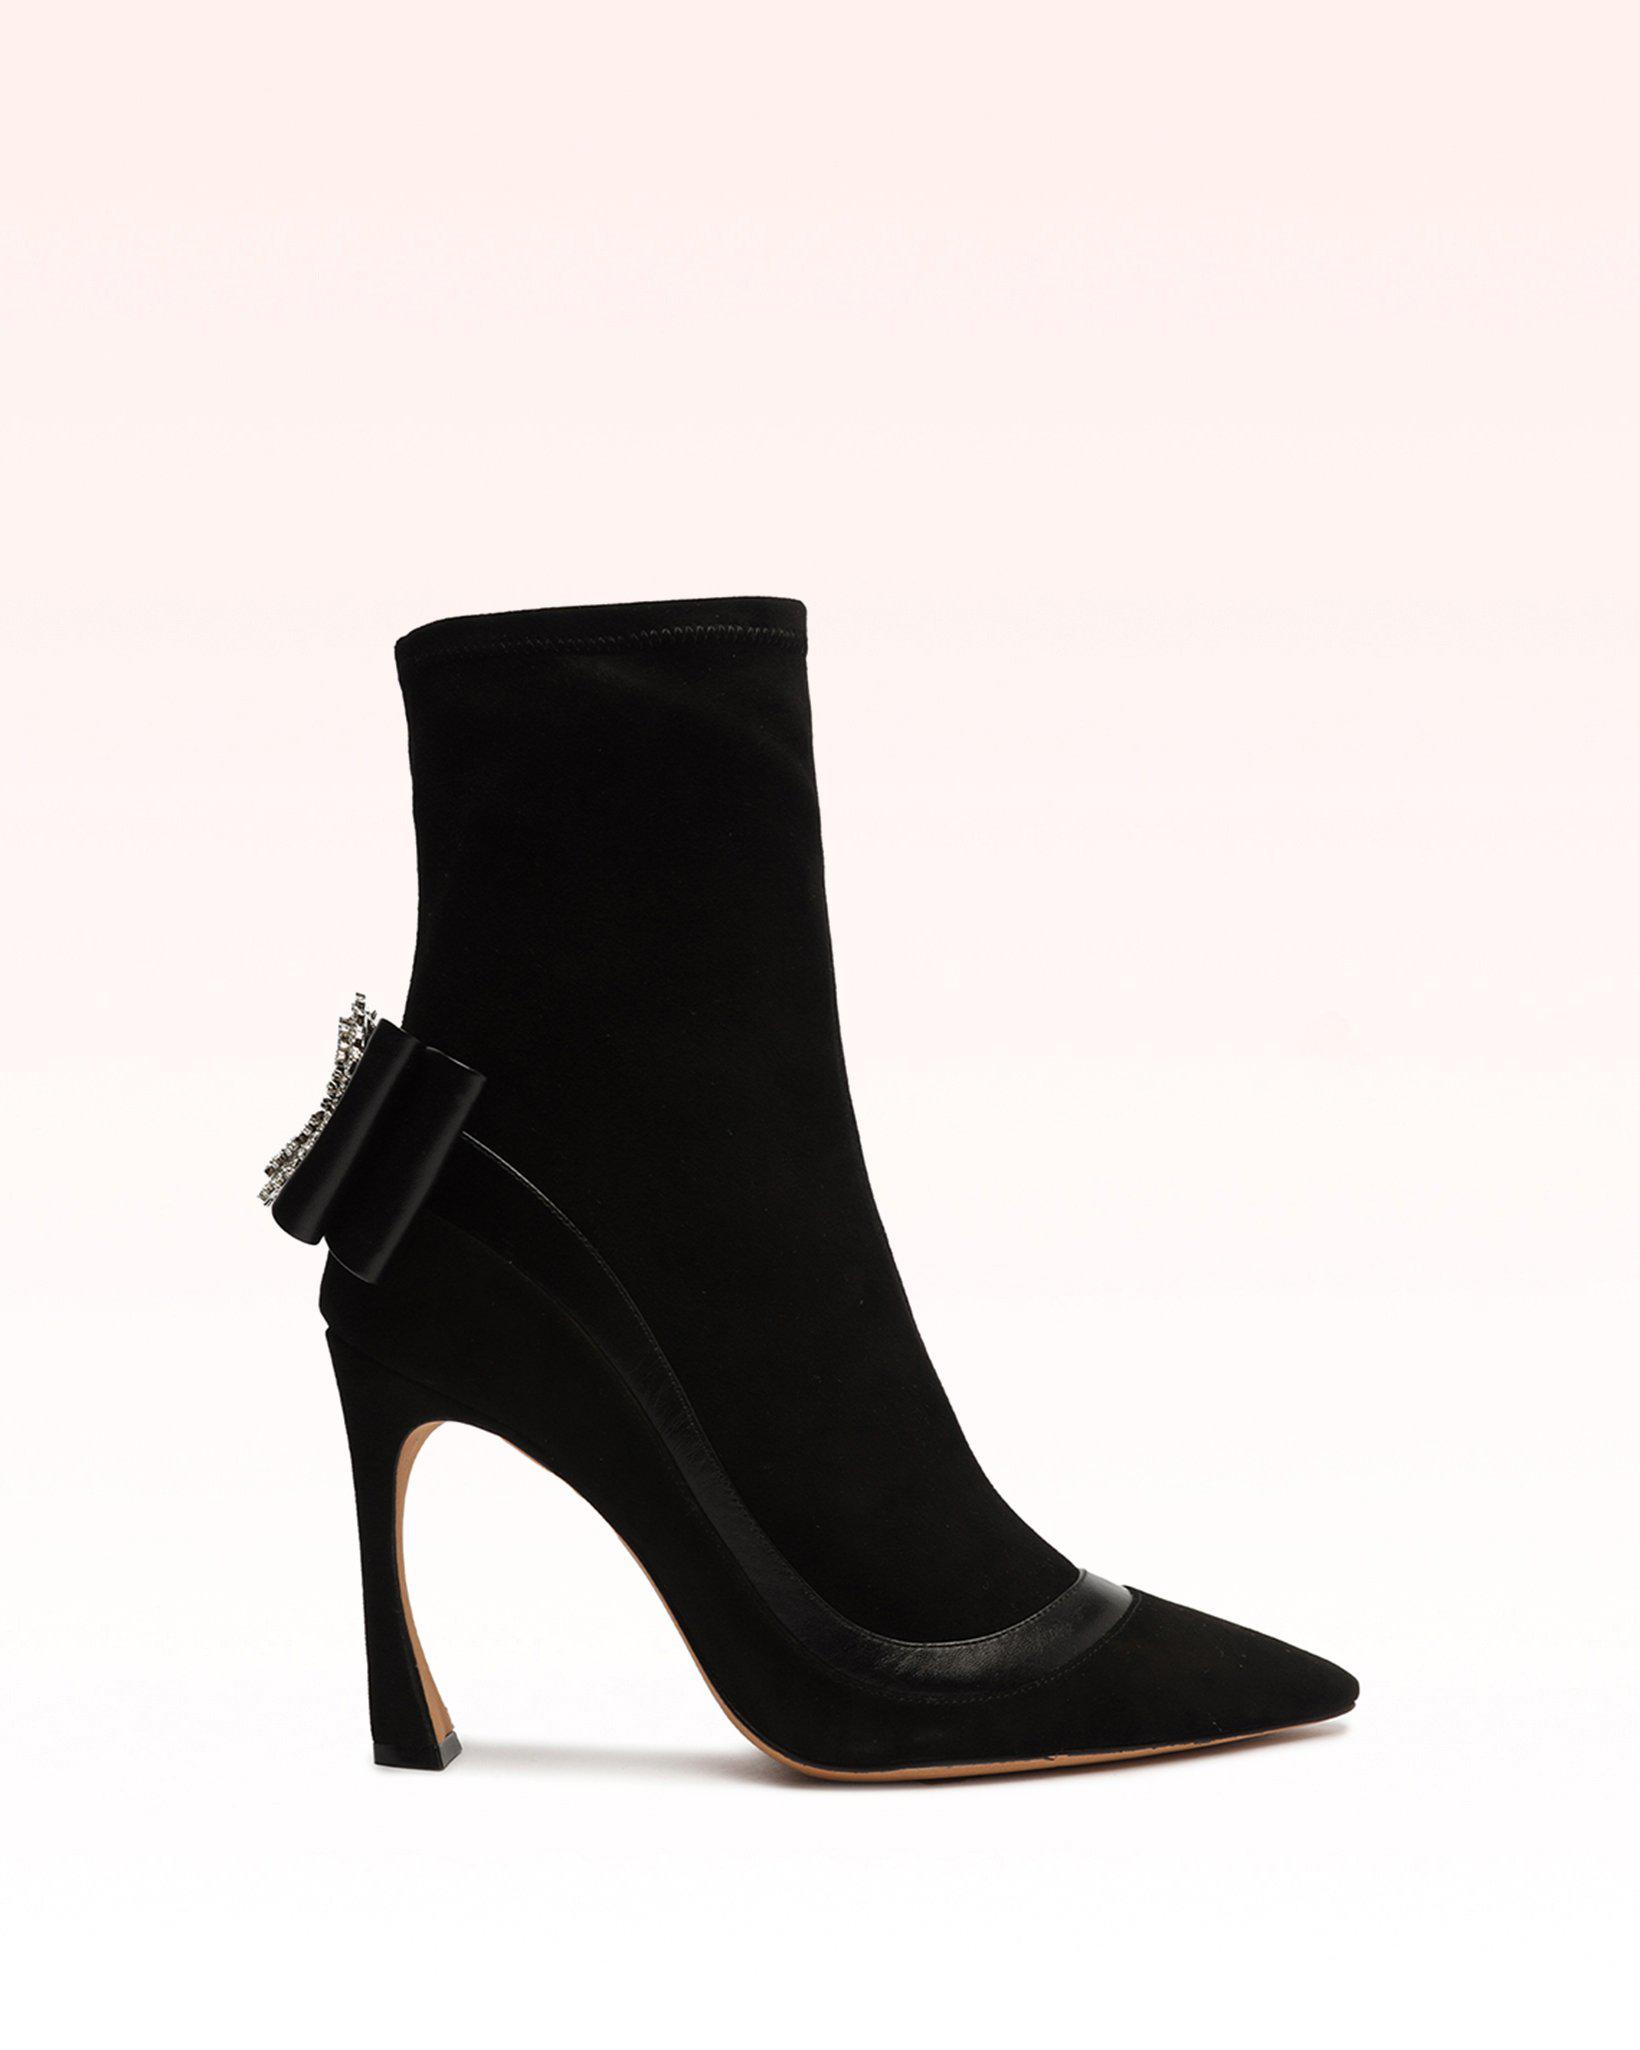 Maddie Wave Suede & Nappa Leather Bootie